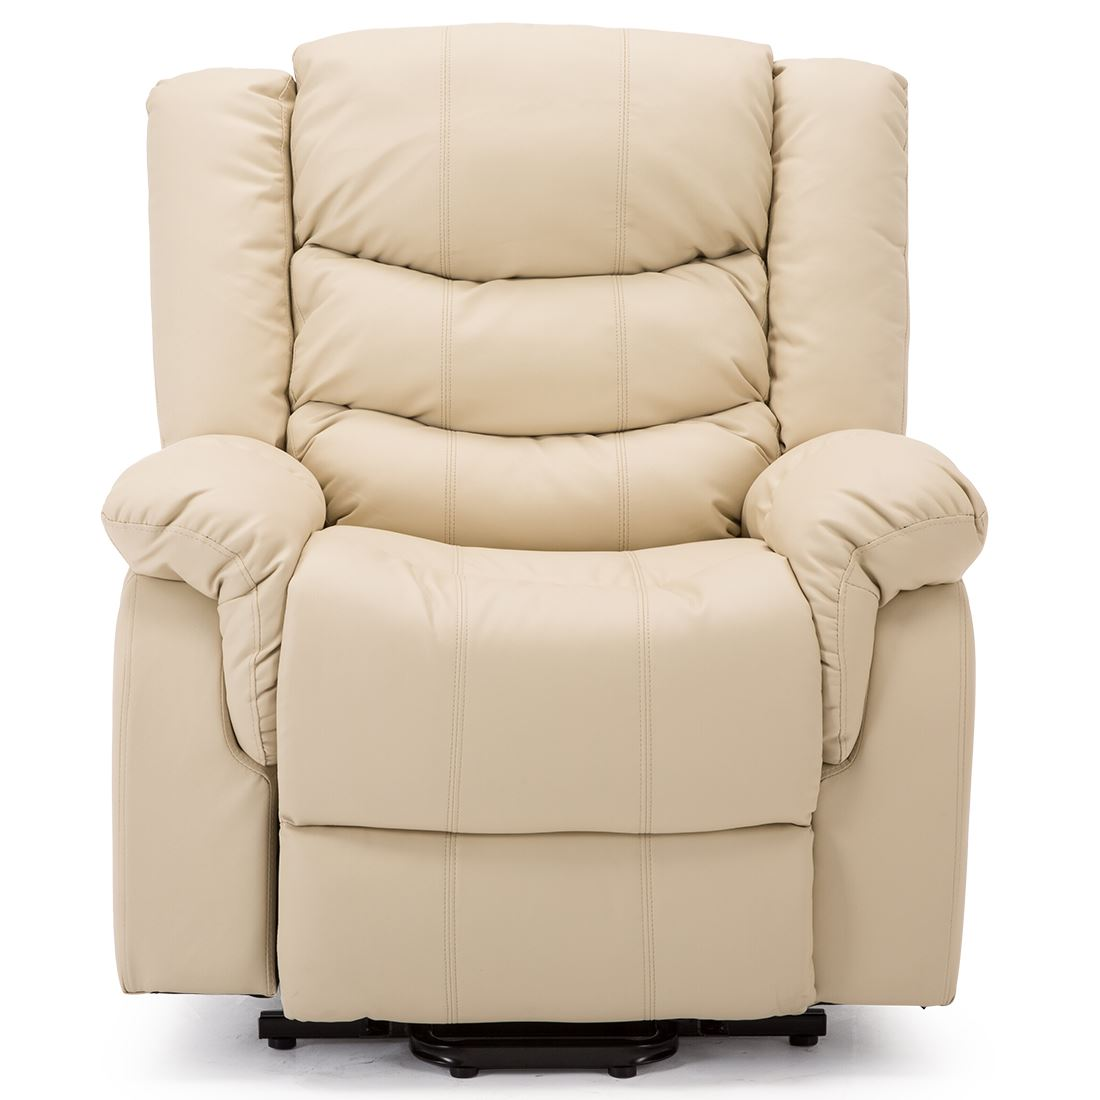 SEATTLE-ELECTRIC-RISE-REAL-LEATHER-RECLINER-ARMCHAIR-SOFA-HOME-LOUNGE-CHAIR thumbnail 22